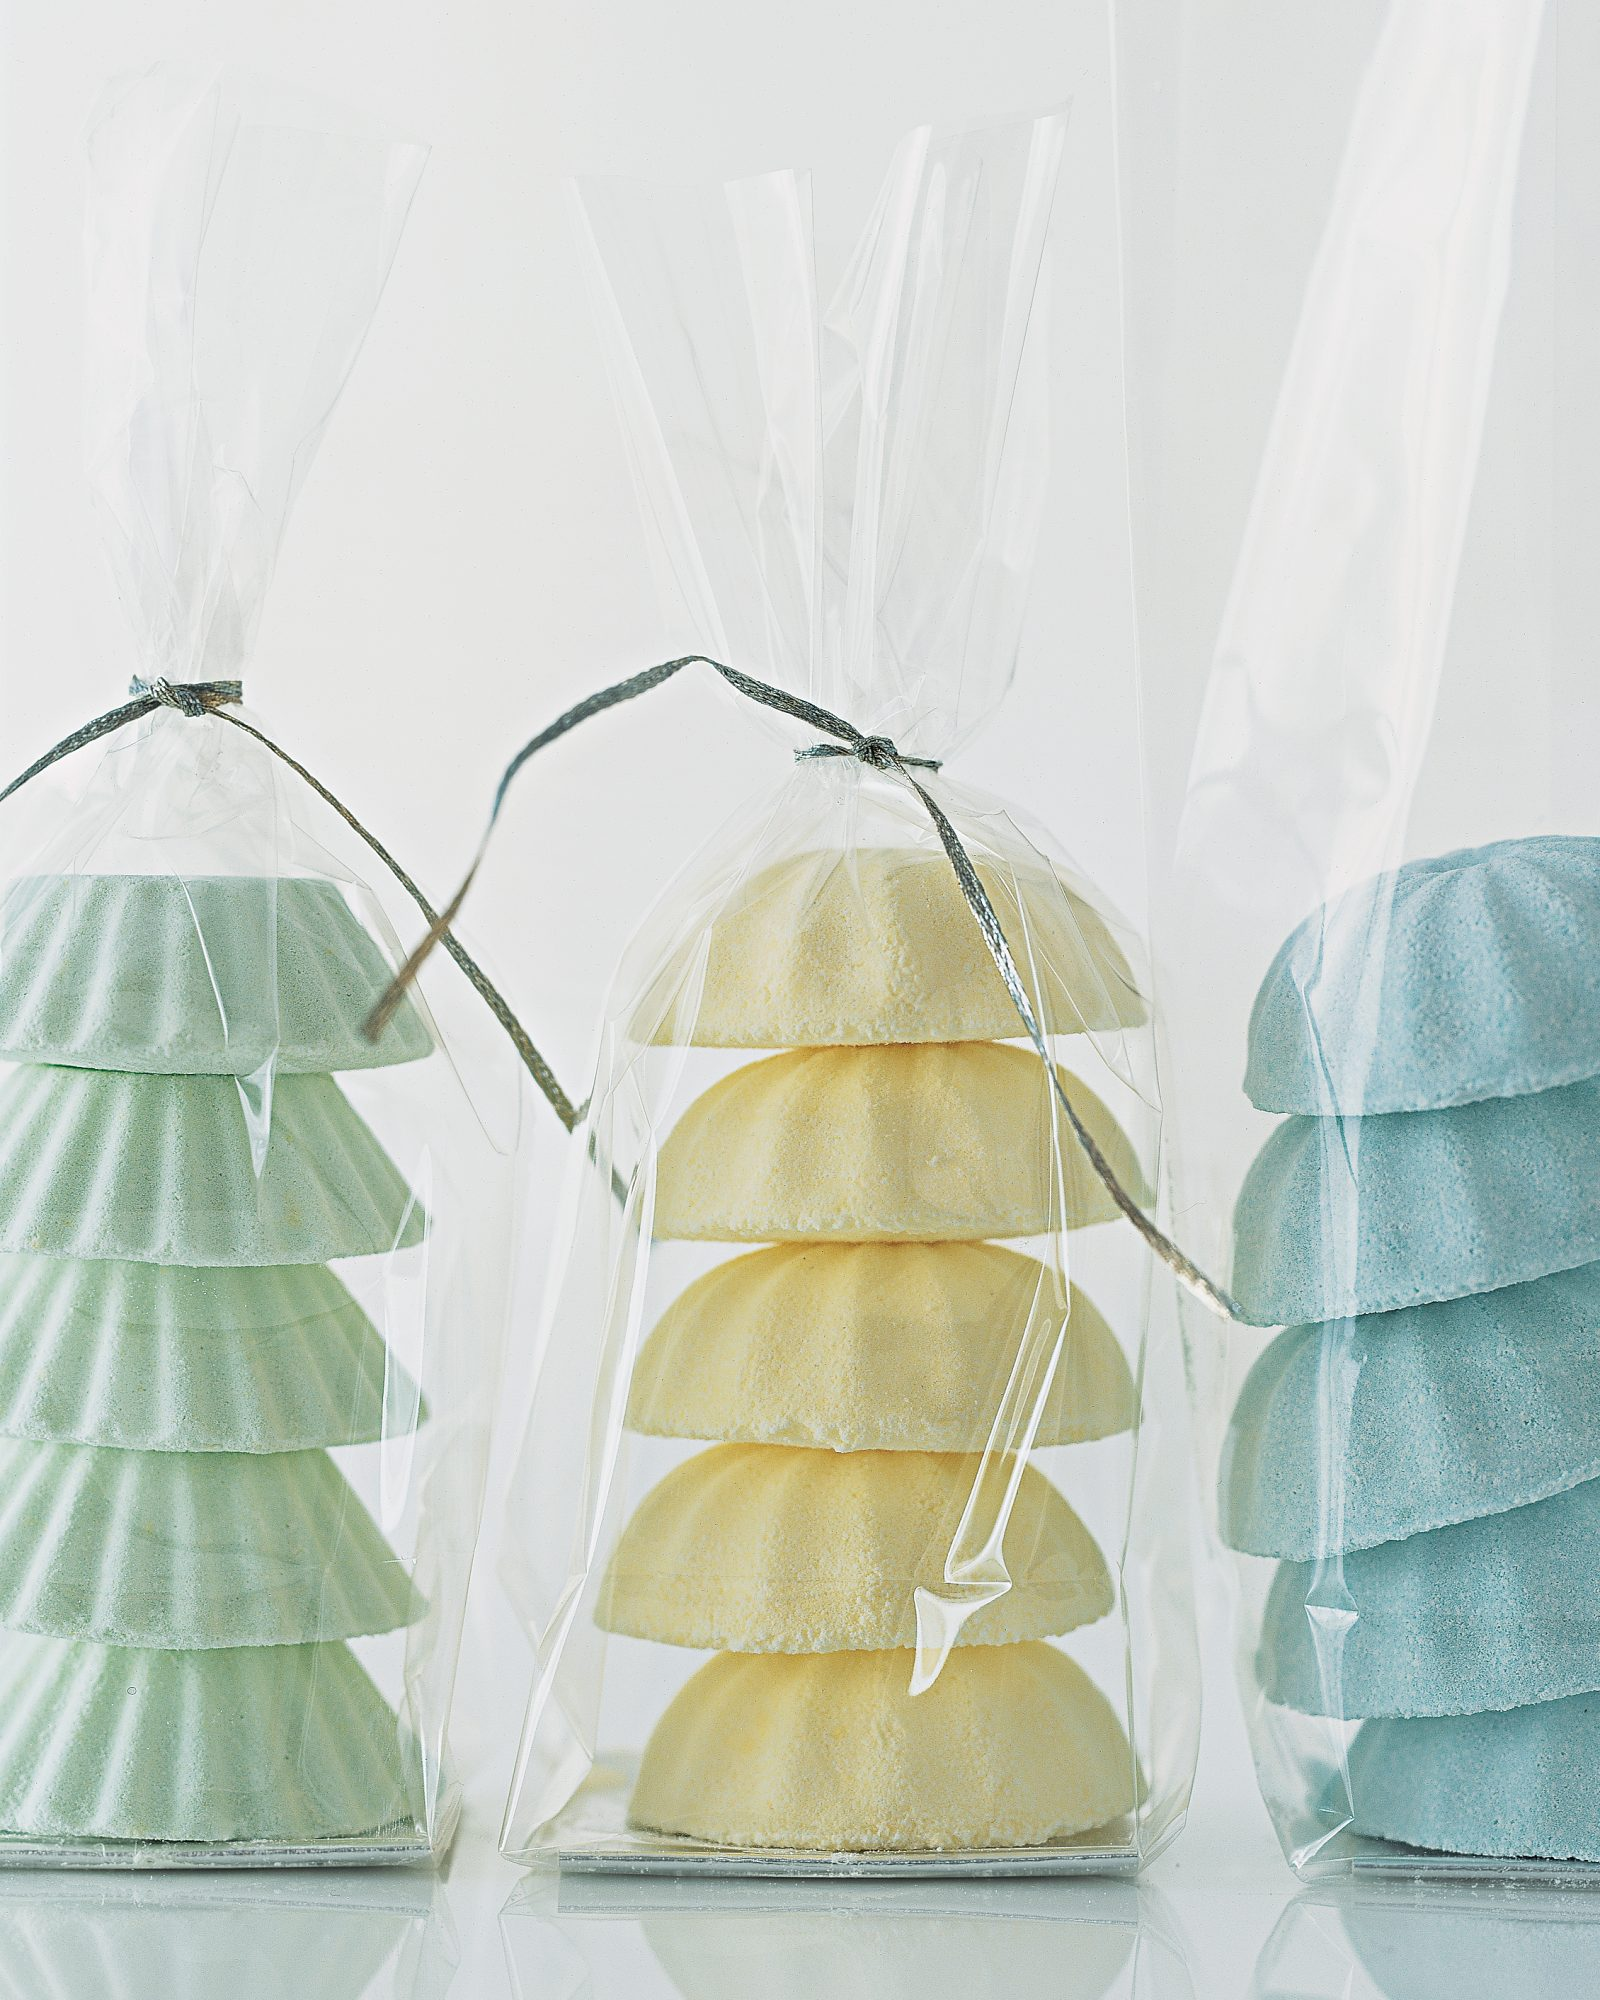 Basic baking molds form these fun bath bombs, which can be crafted using scents and colors that complement your wedding scheme.